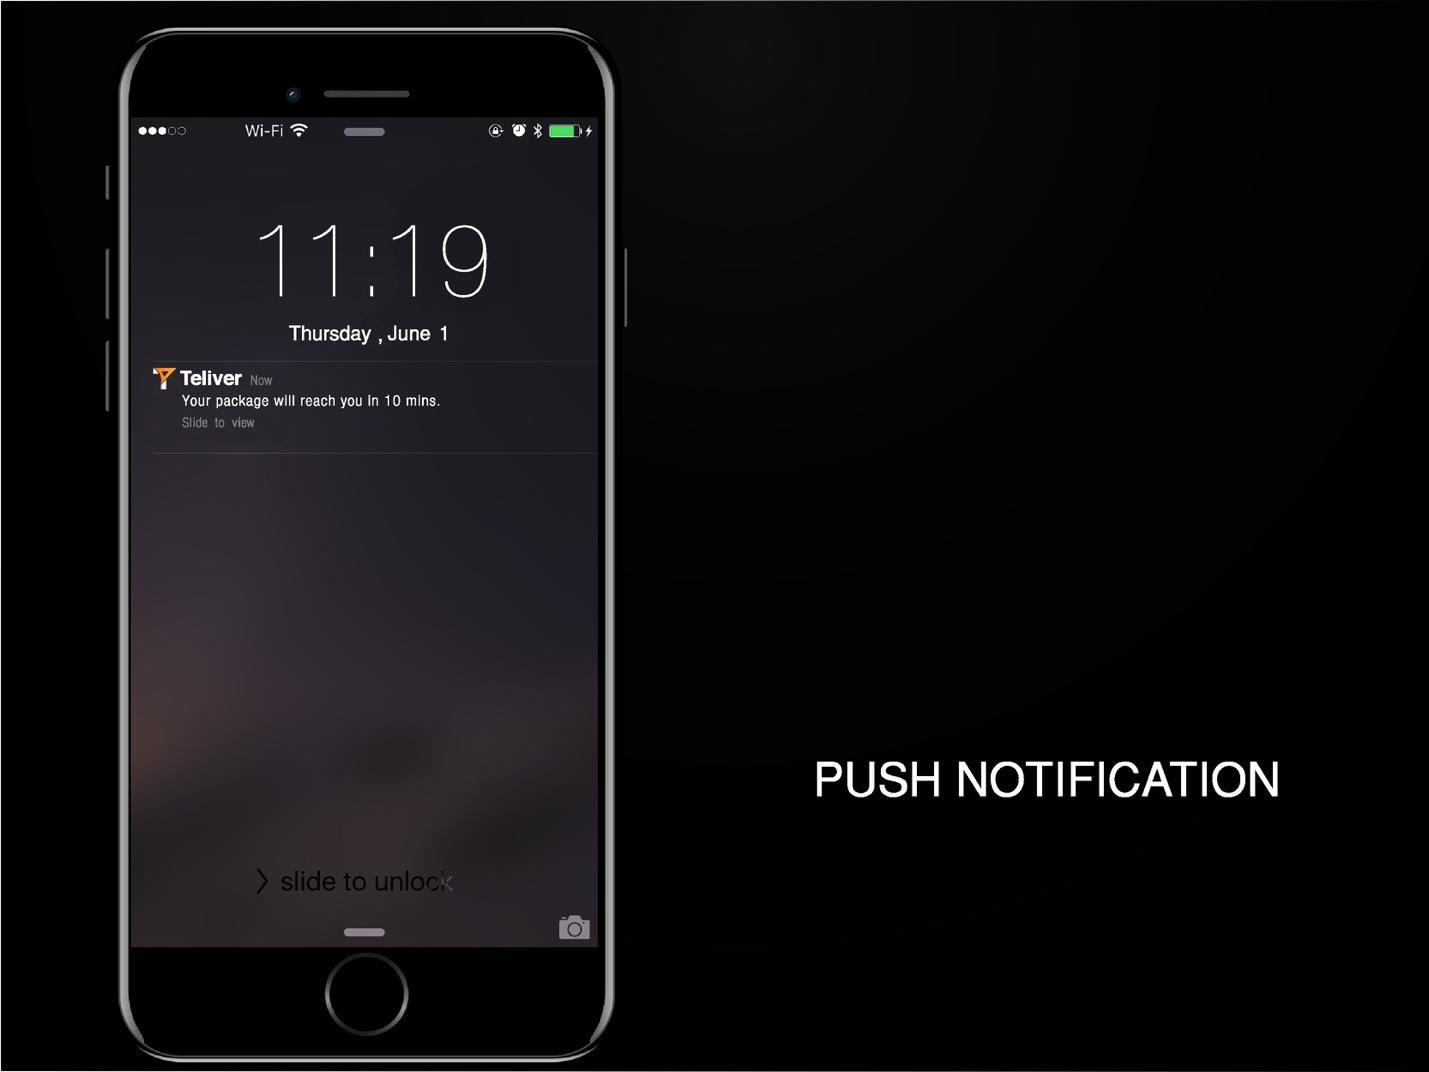 Send Push Notifications to iOS Devices Via Teliver (Xcode 8